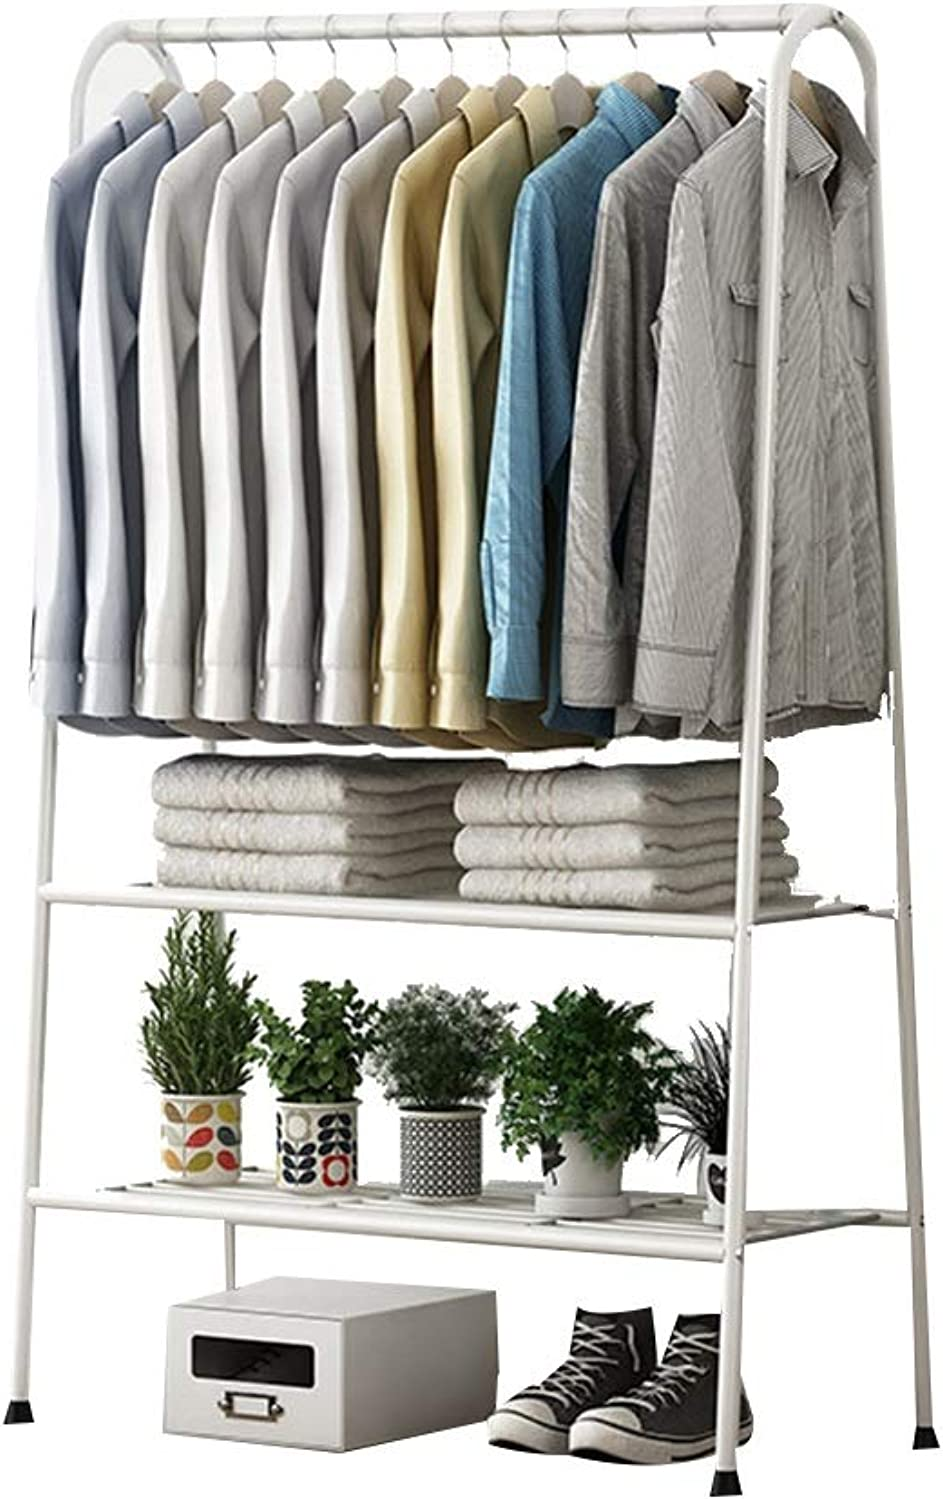 JIAYING Heavy Duty Coat shoes Entryway Rack with 2-Tier shoes Bench Shelves Organizer with Coat Hat Umbrella Rack for Hallway Entryway Metal, Black, White (color   White)